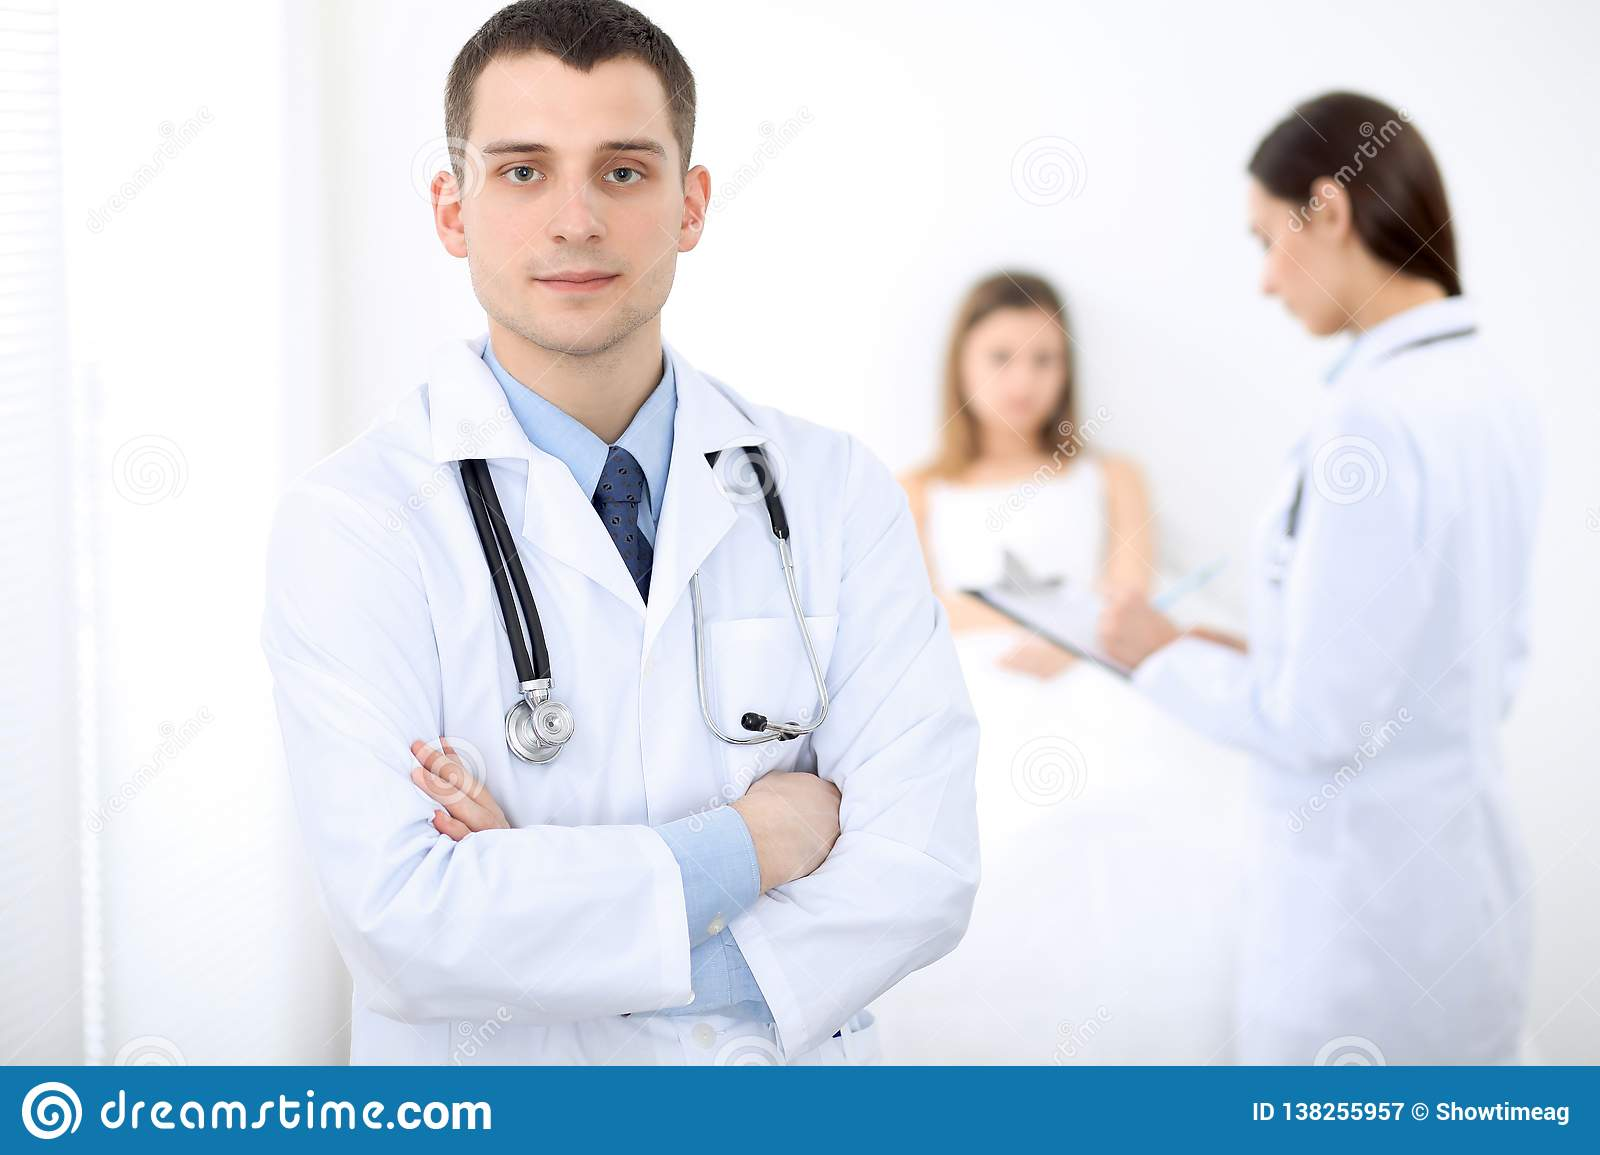 Medicine doctor standing and smiling on the background with patient in the bed